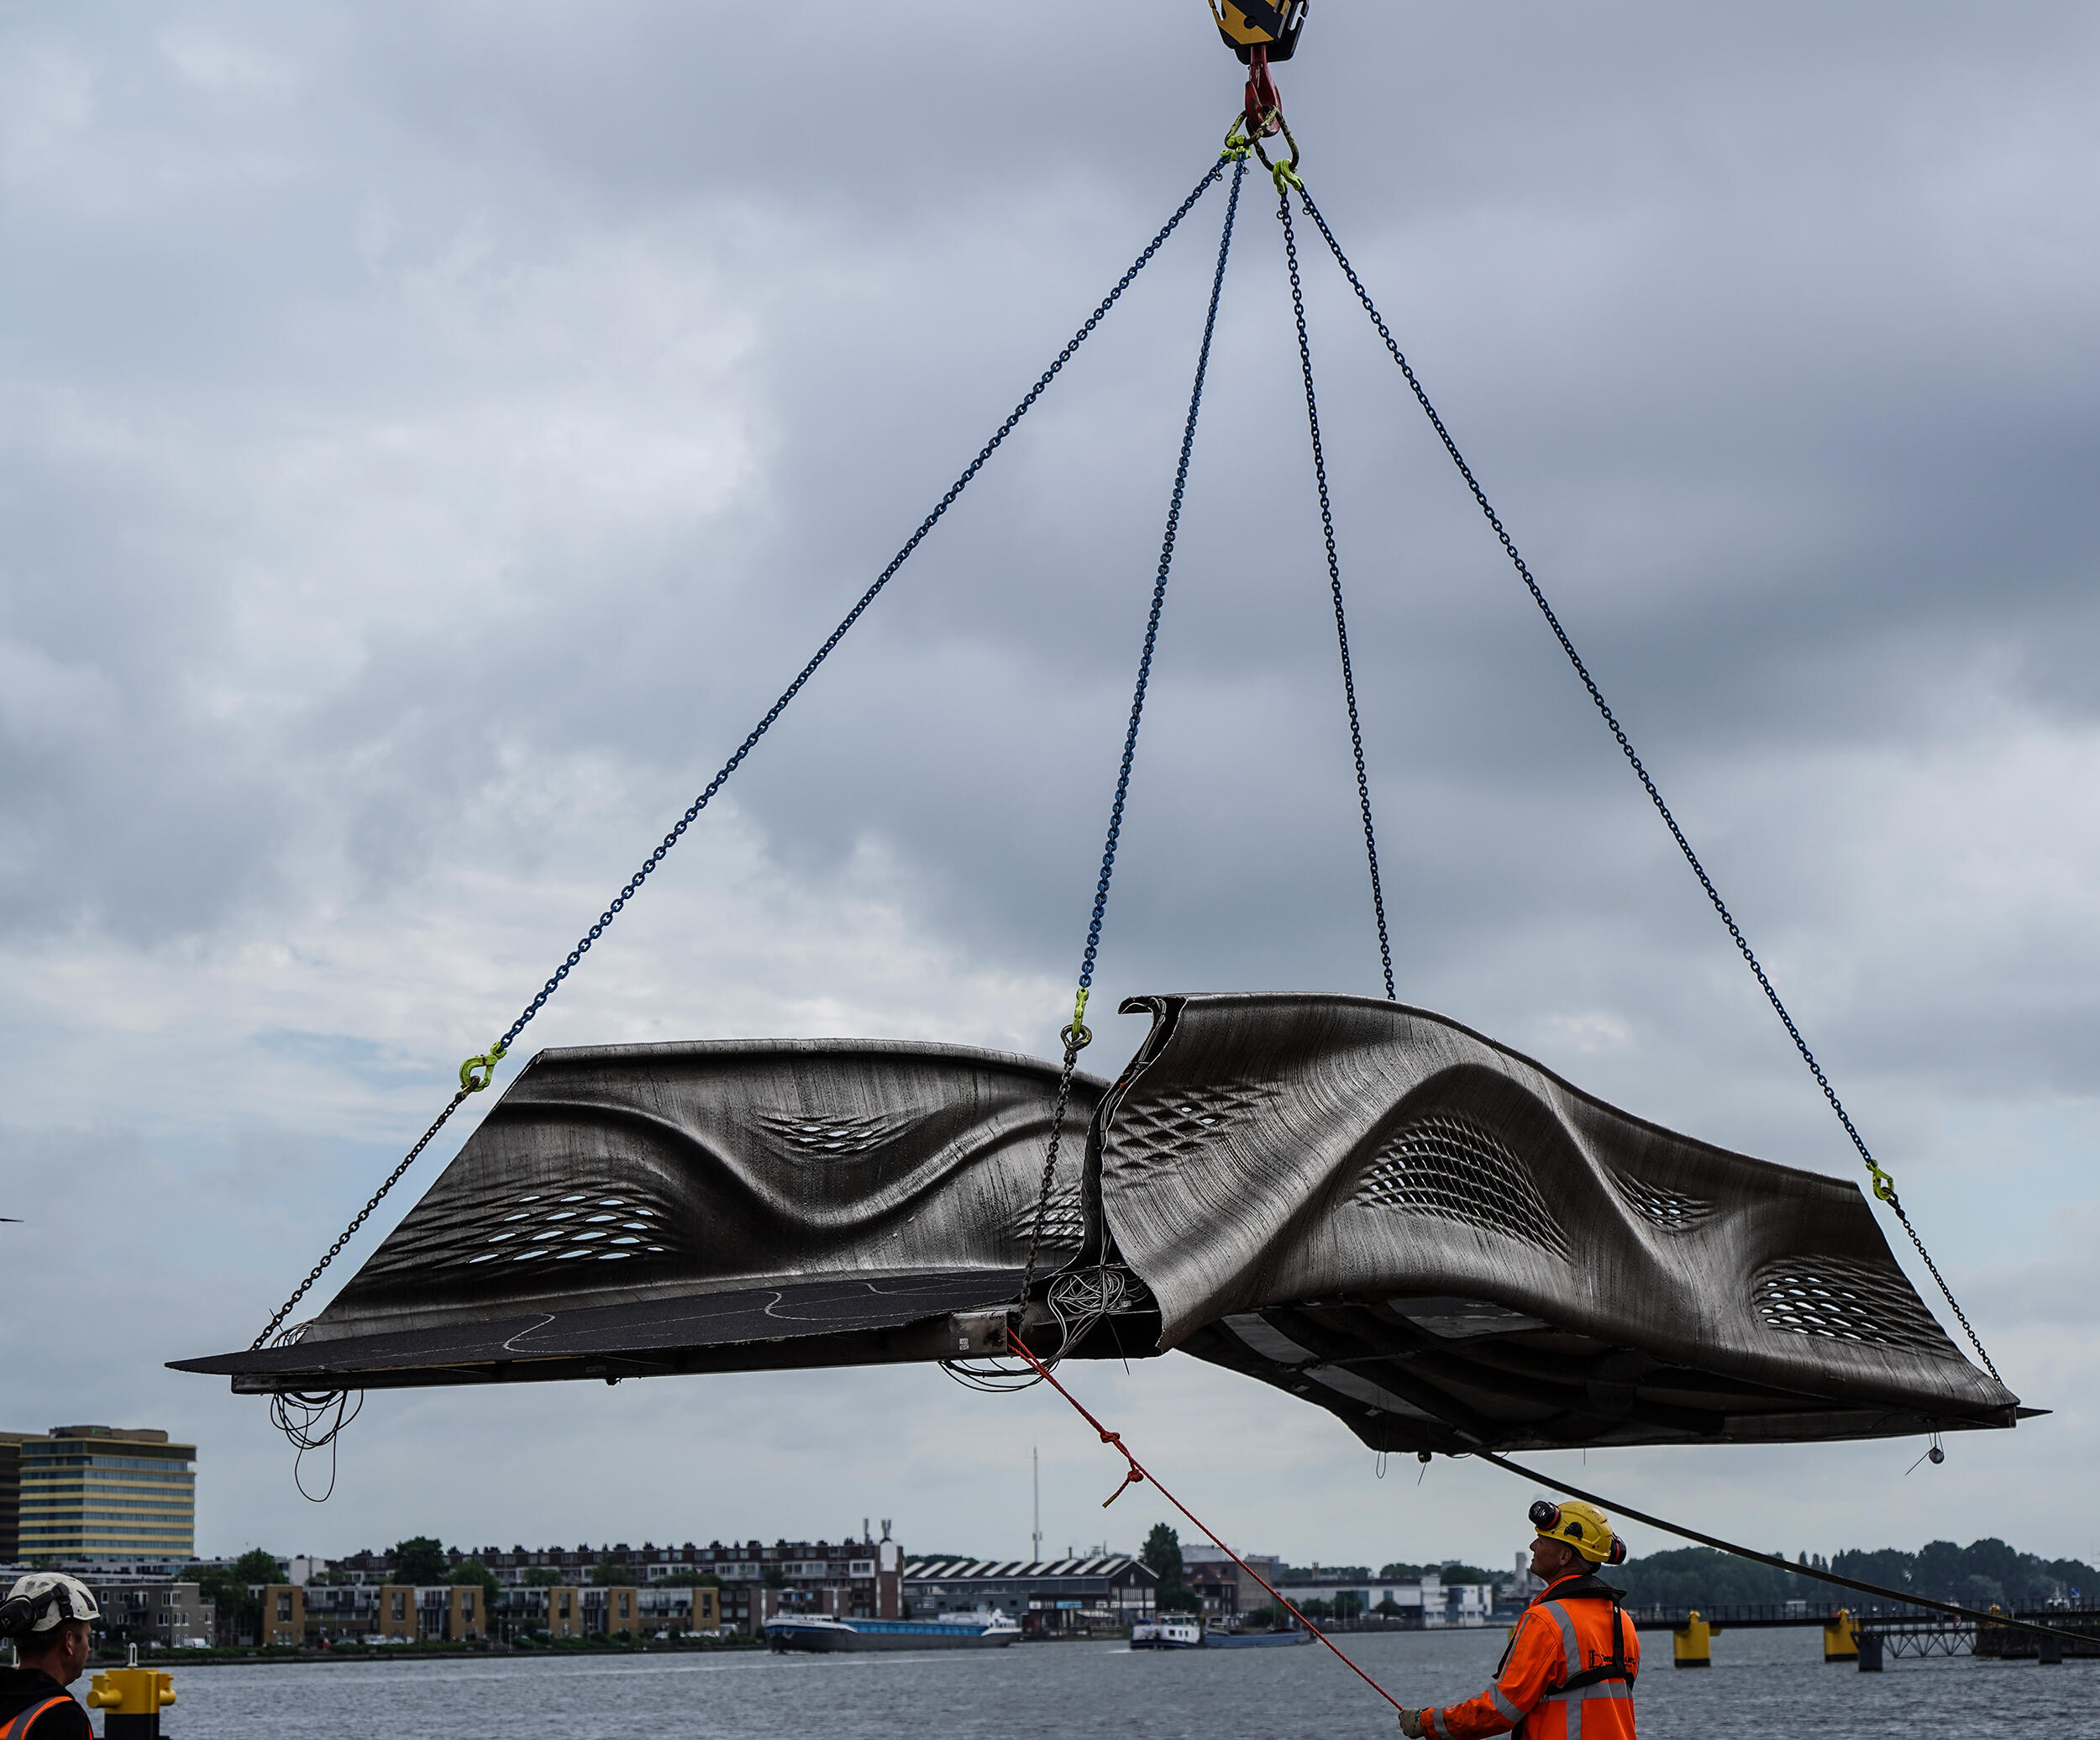 <p>The world's first 3D printed pedestrian bridge is hoisted off its transport as it makes its way to Amsterdam's Red Light District for installation.</p>